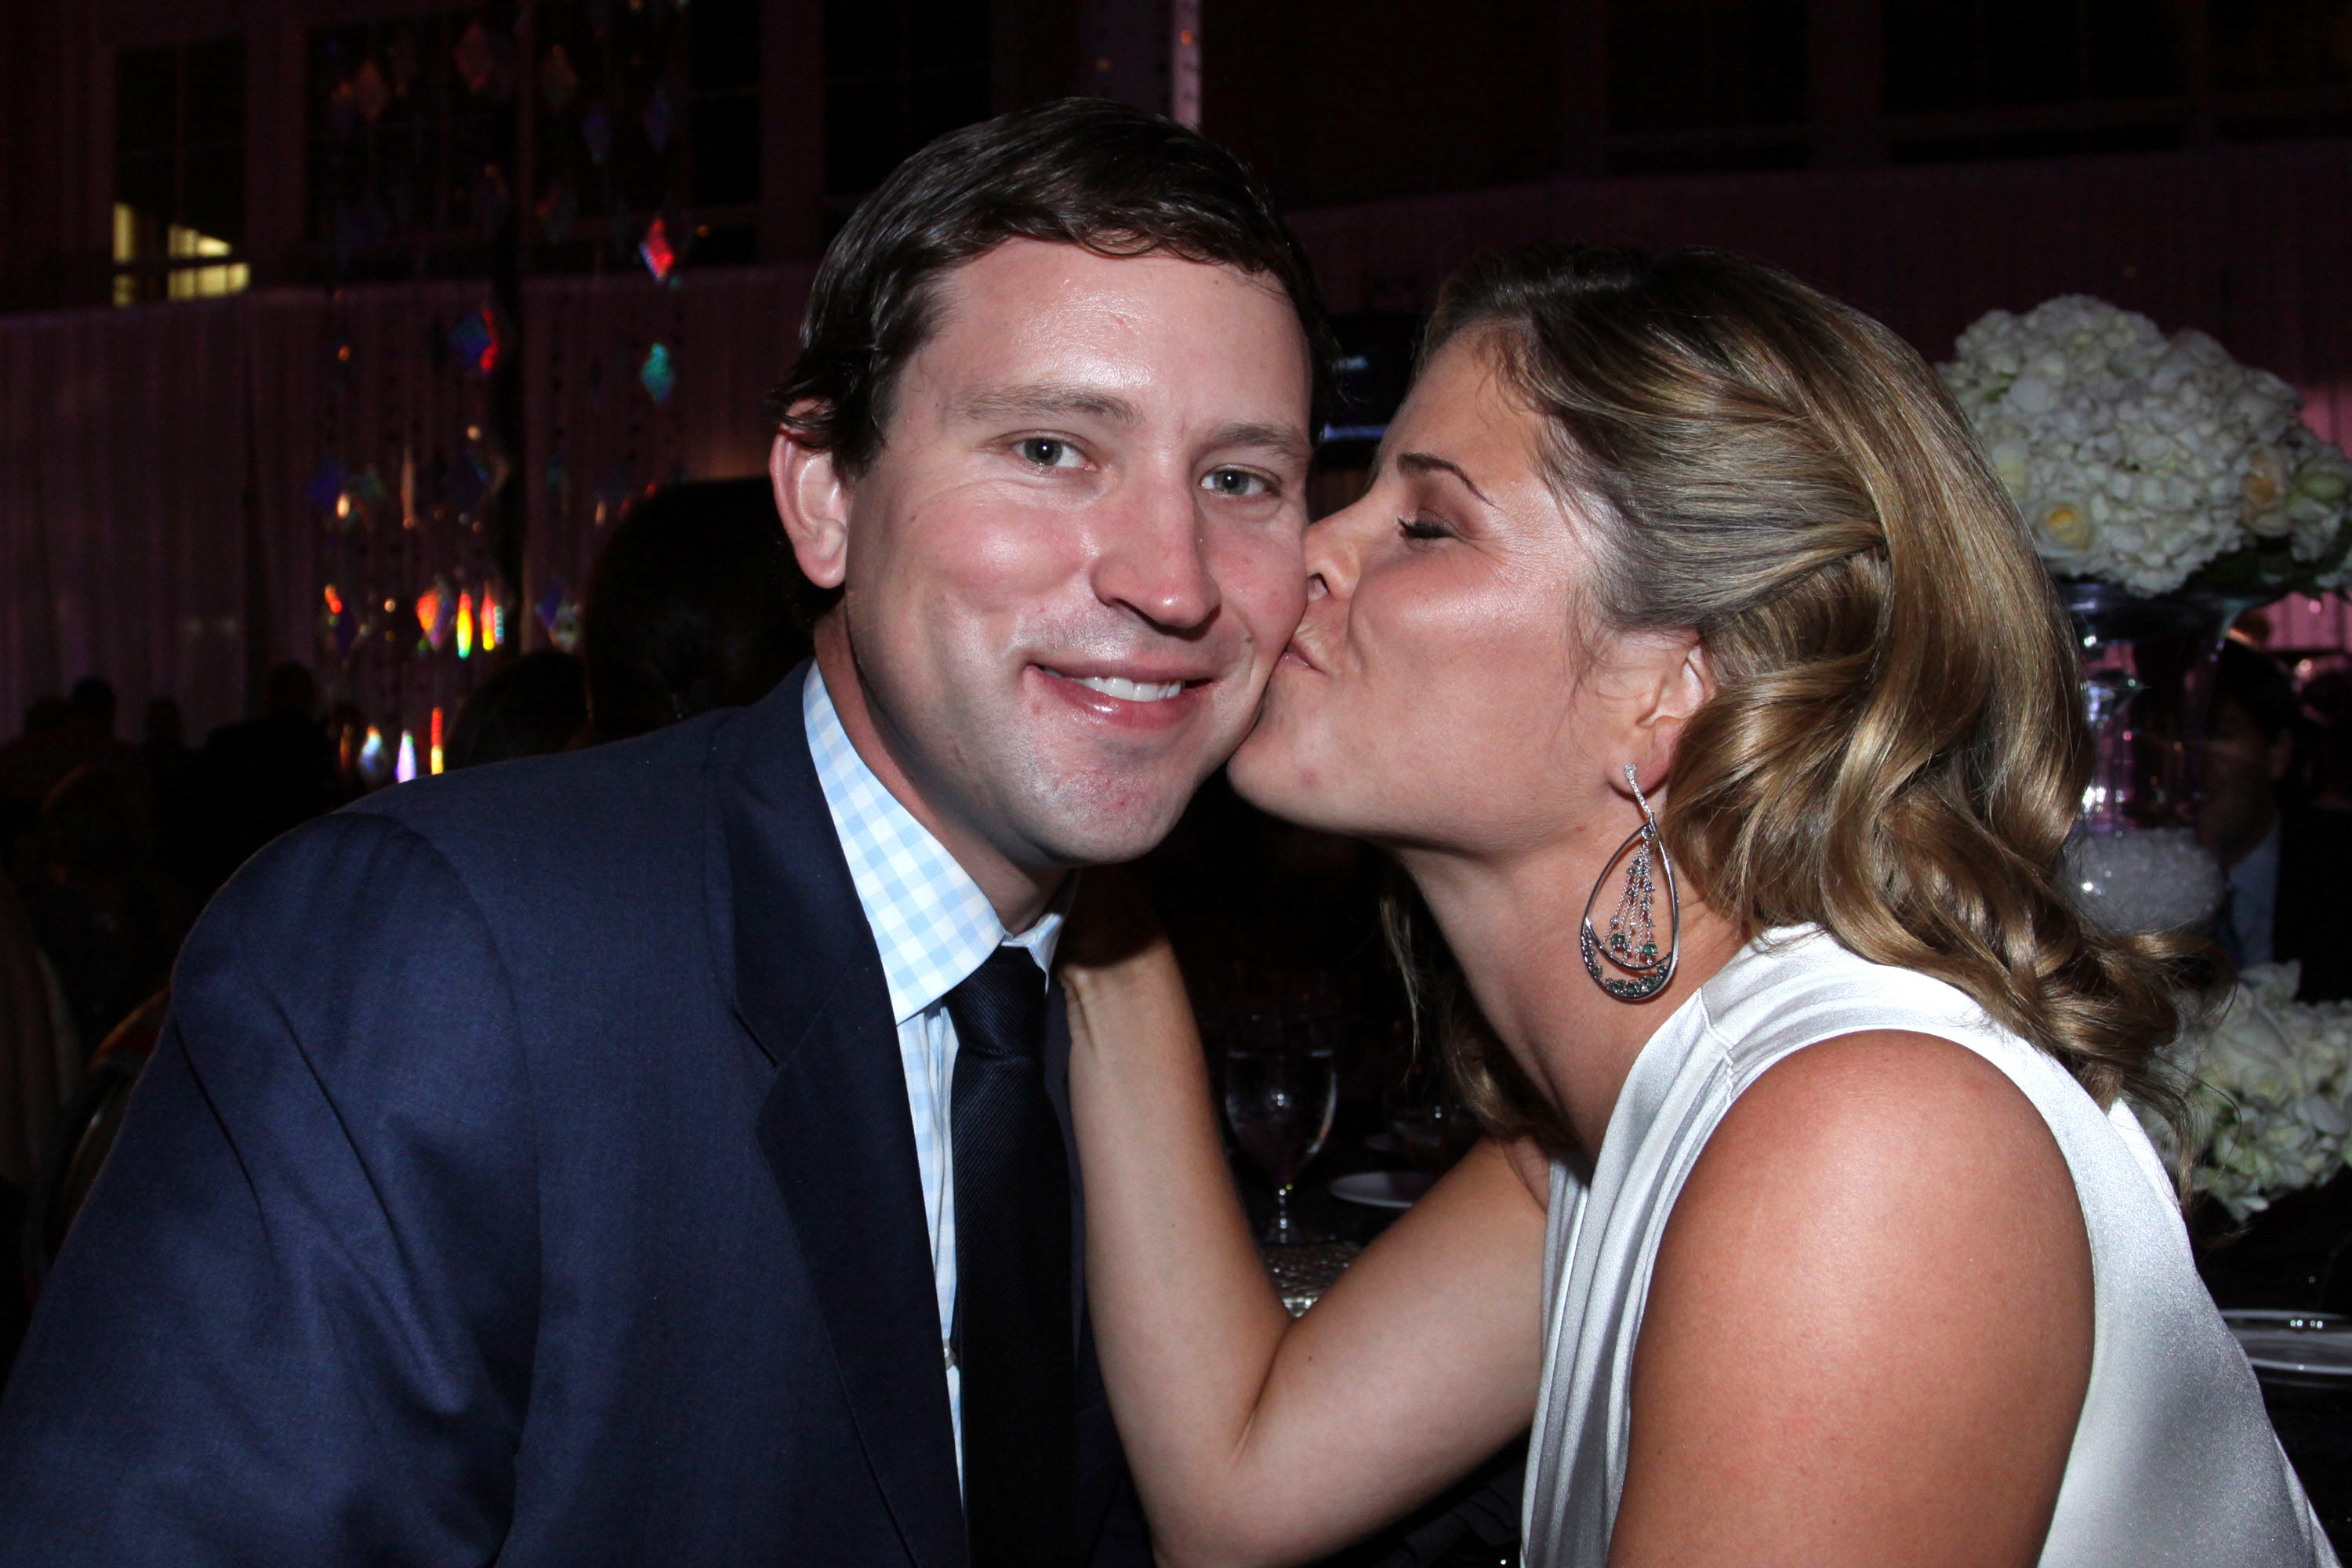 WATCH: Inside Henry and Jenna Bush Hager's Adorable Love Story